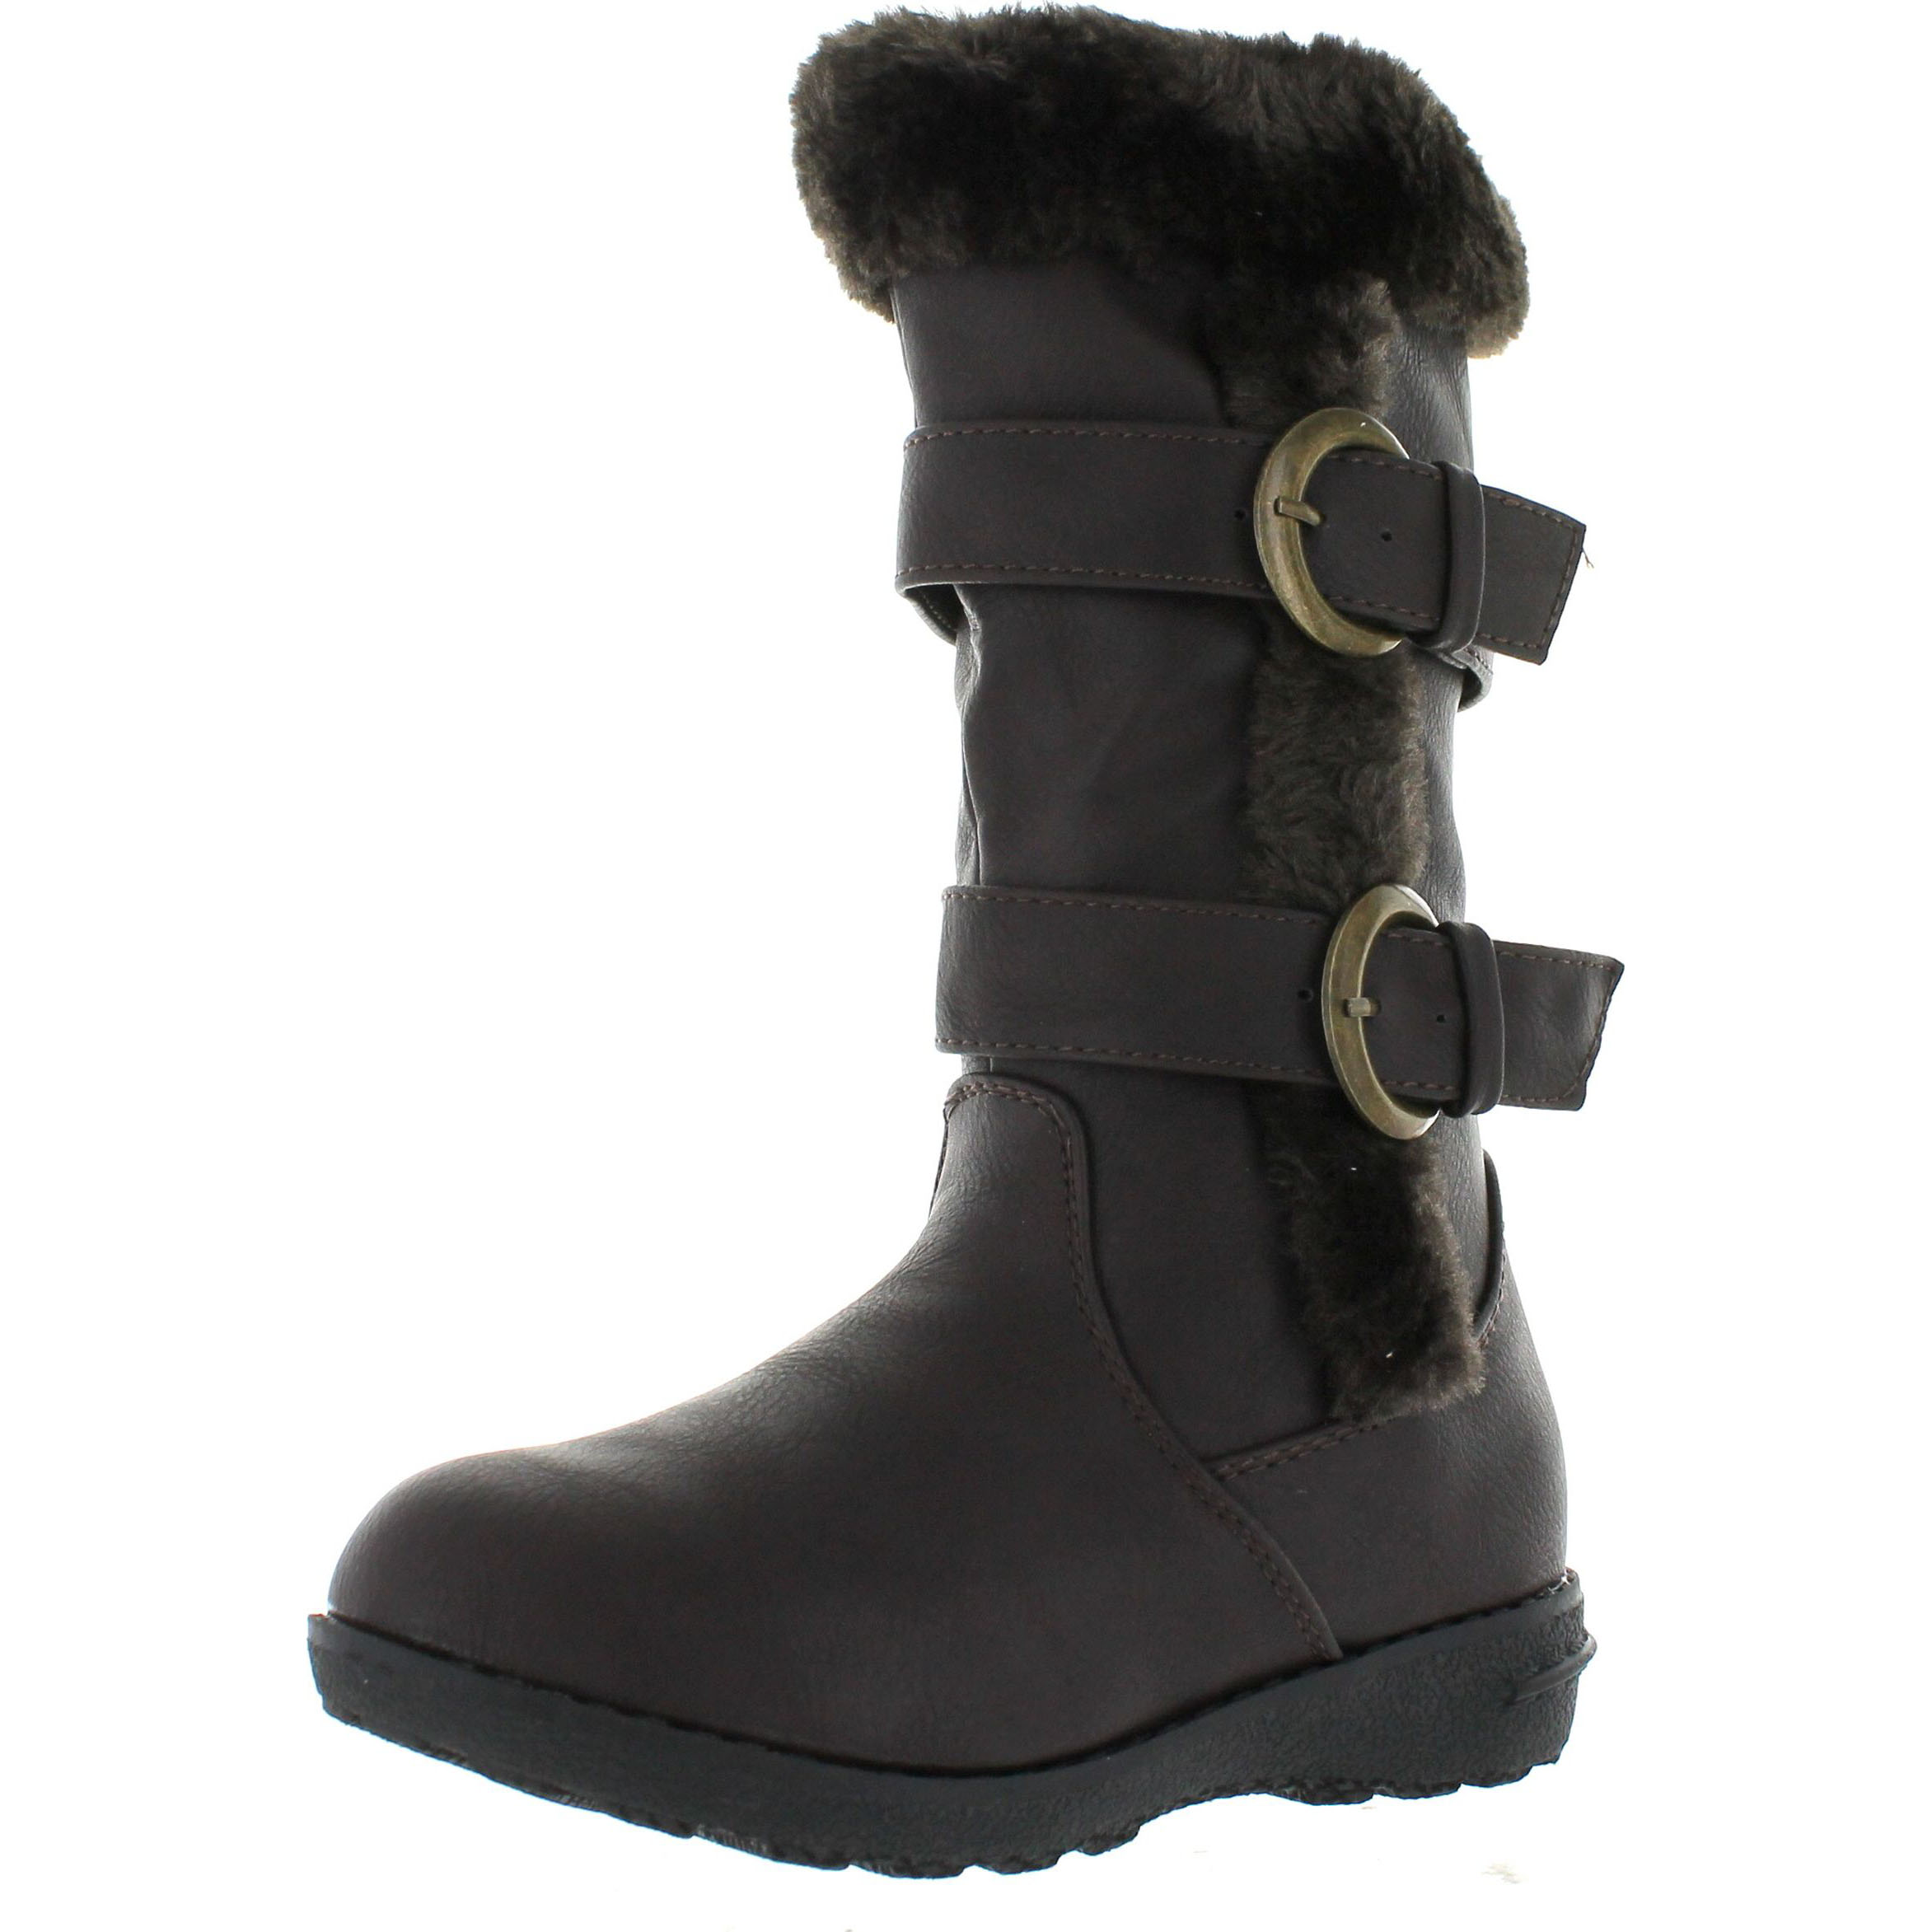 Lucky Top Youth-1K Children Girl's Low Heel Double Buckle Knee High Snow Boots by Static Footwear